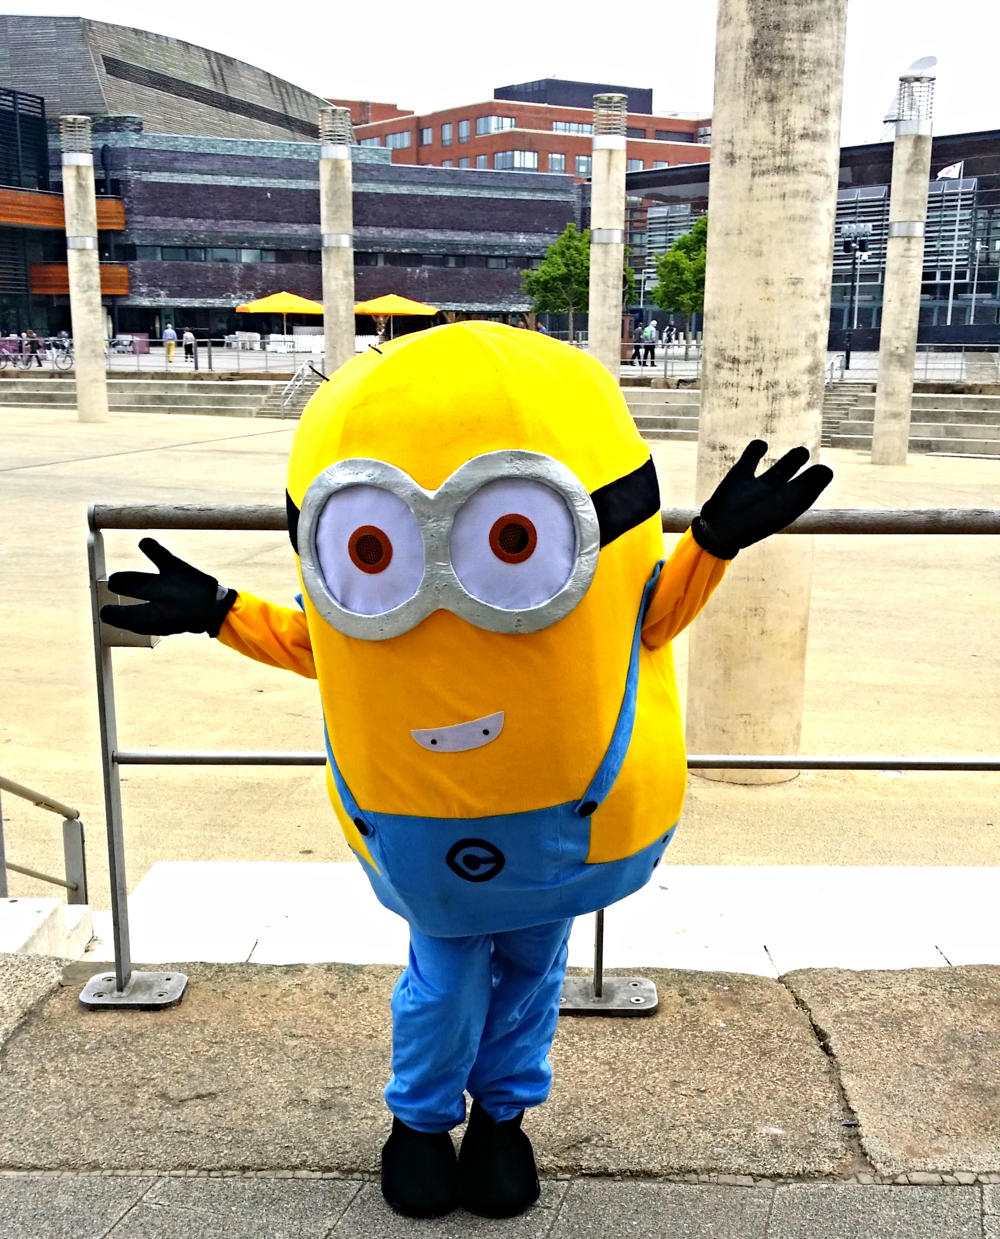 The Minions were unleashed around Cardiff Bay's Mermaid Quay!